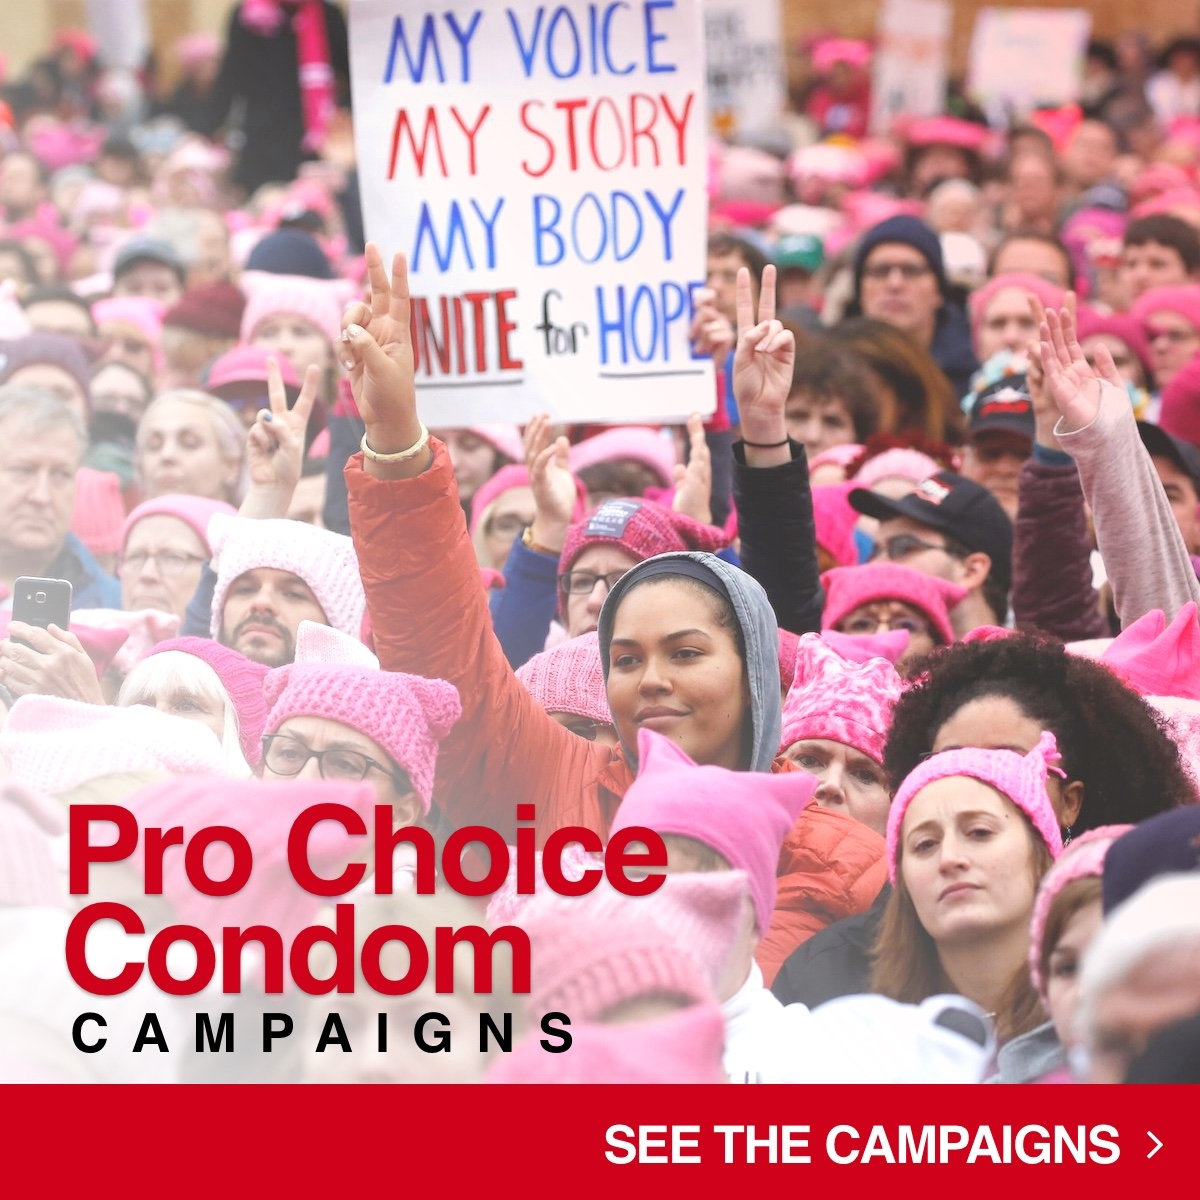 Pro-Choice Condoms